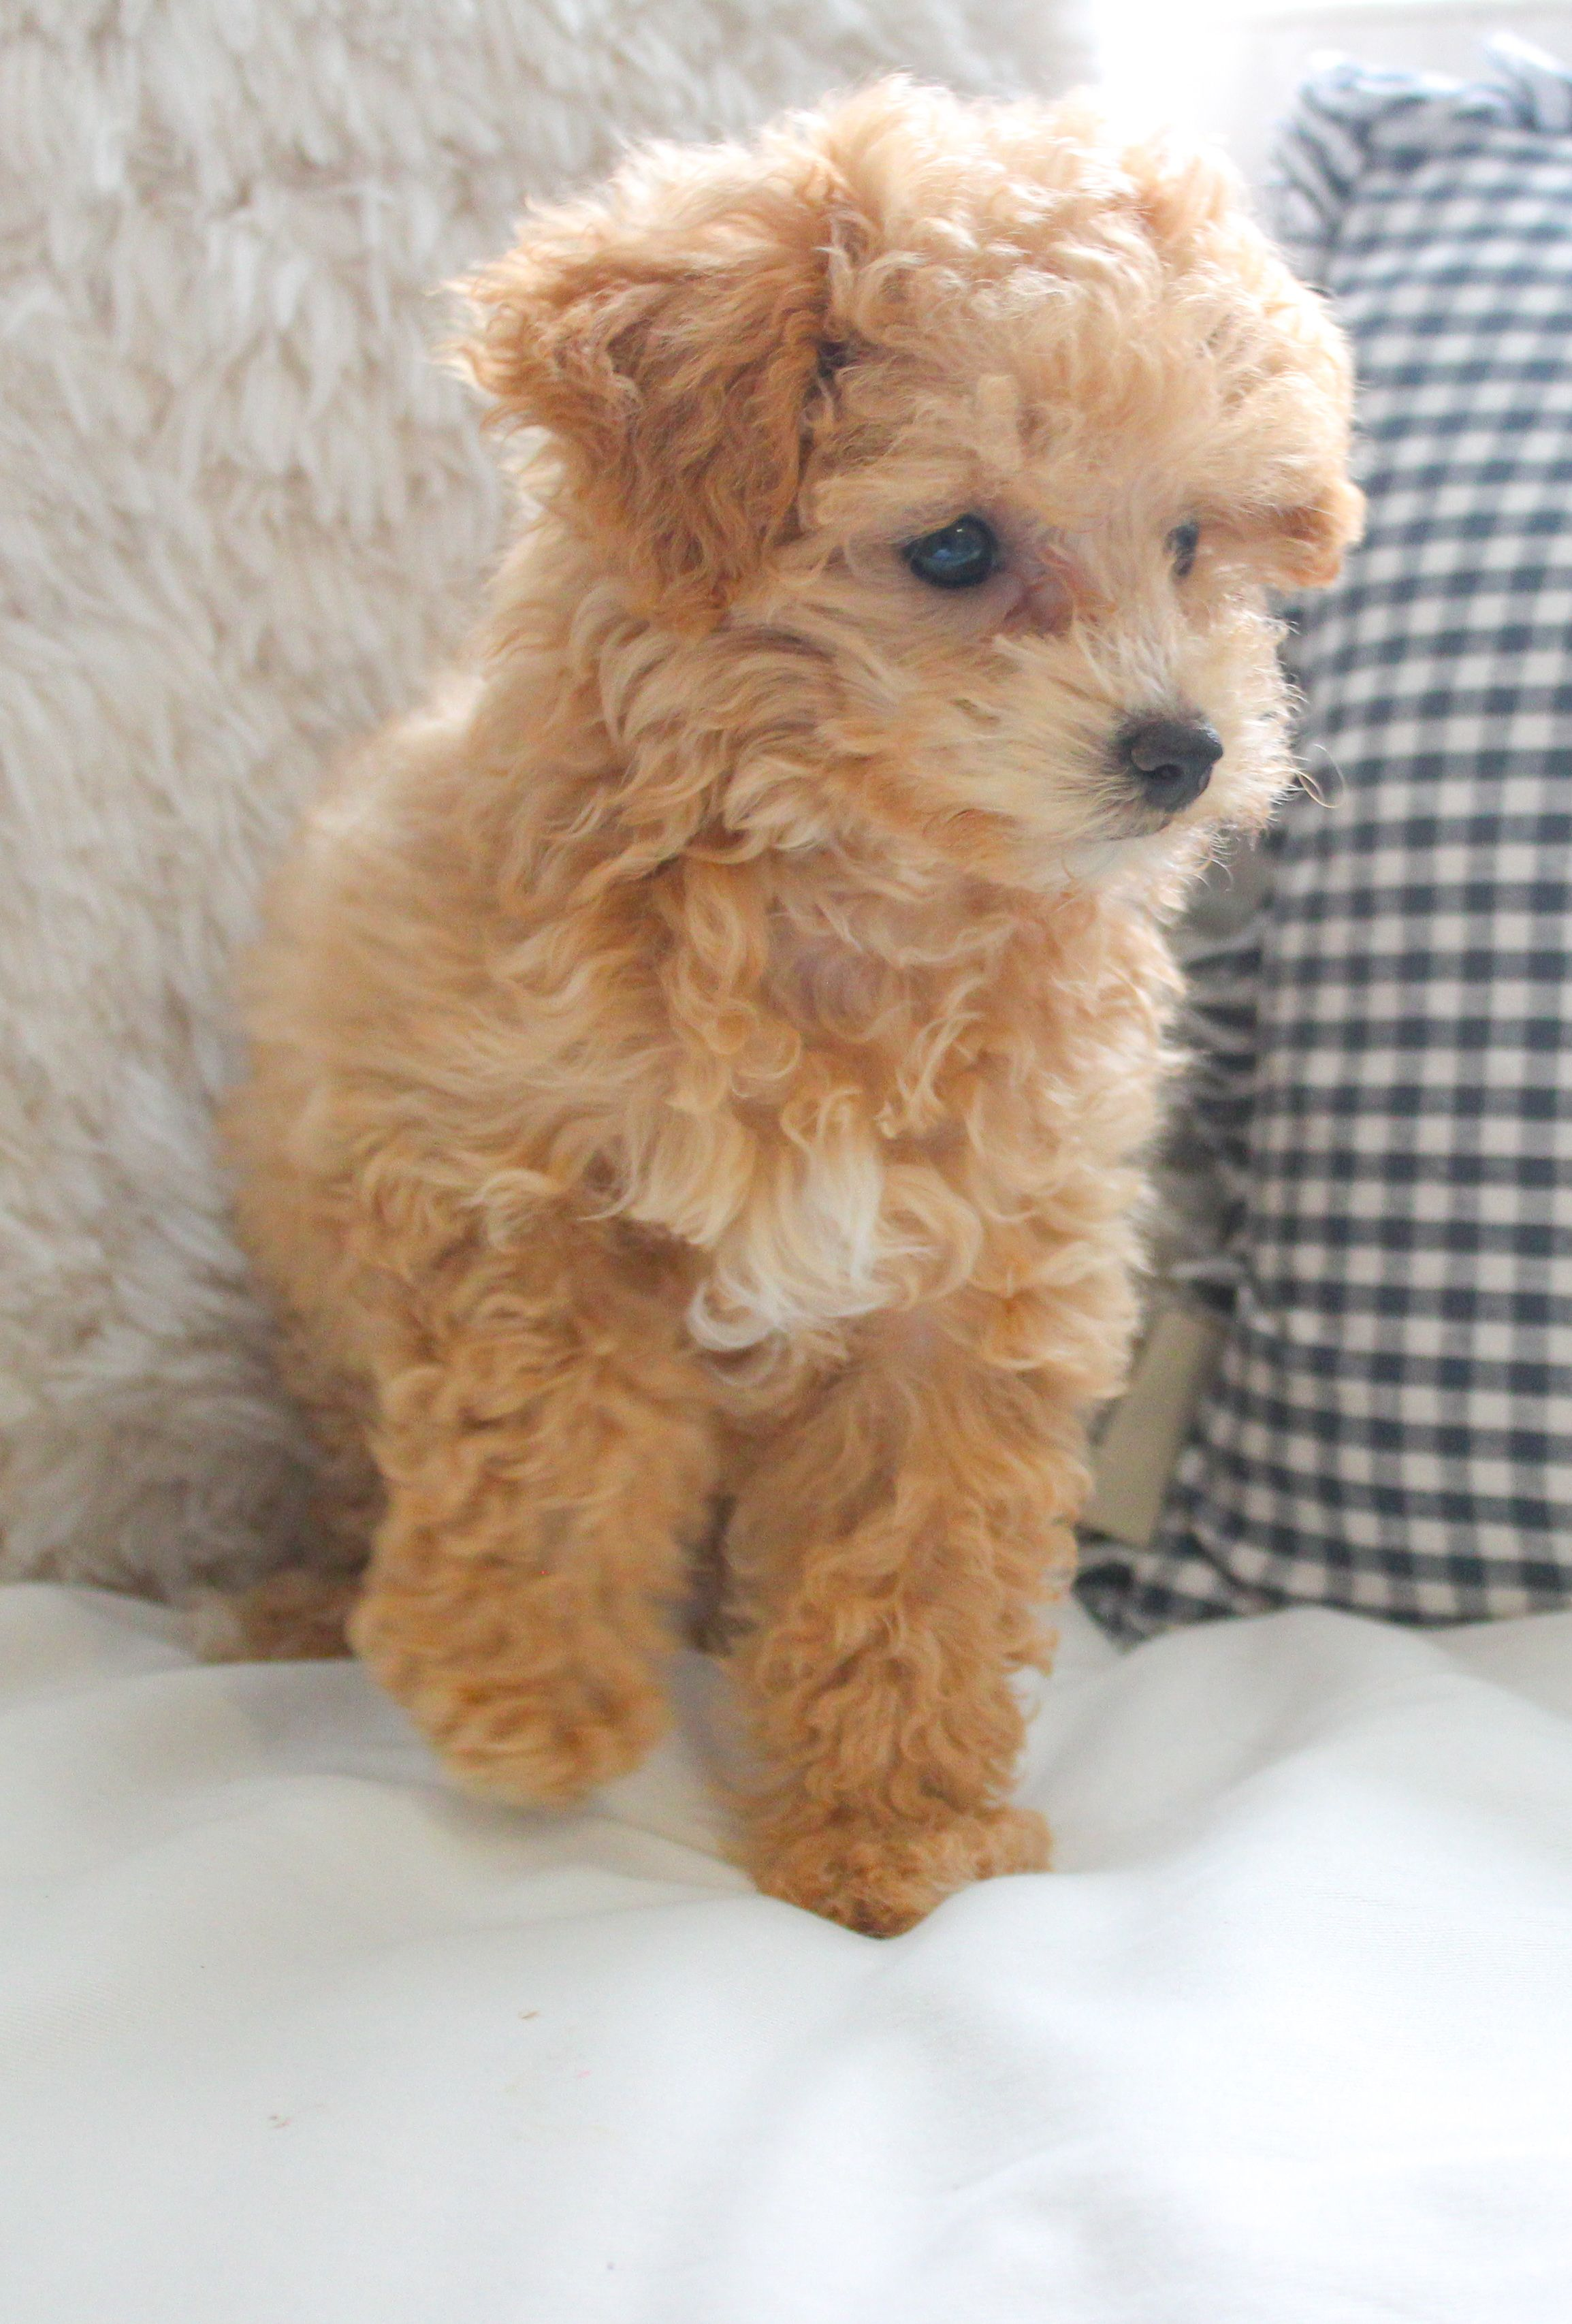 Ranger S Must Have Puppy Products Maltipoo Puppy Puppies Teddy